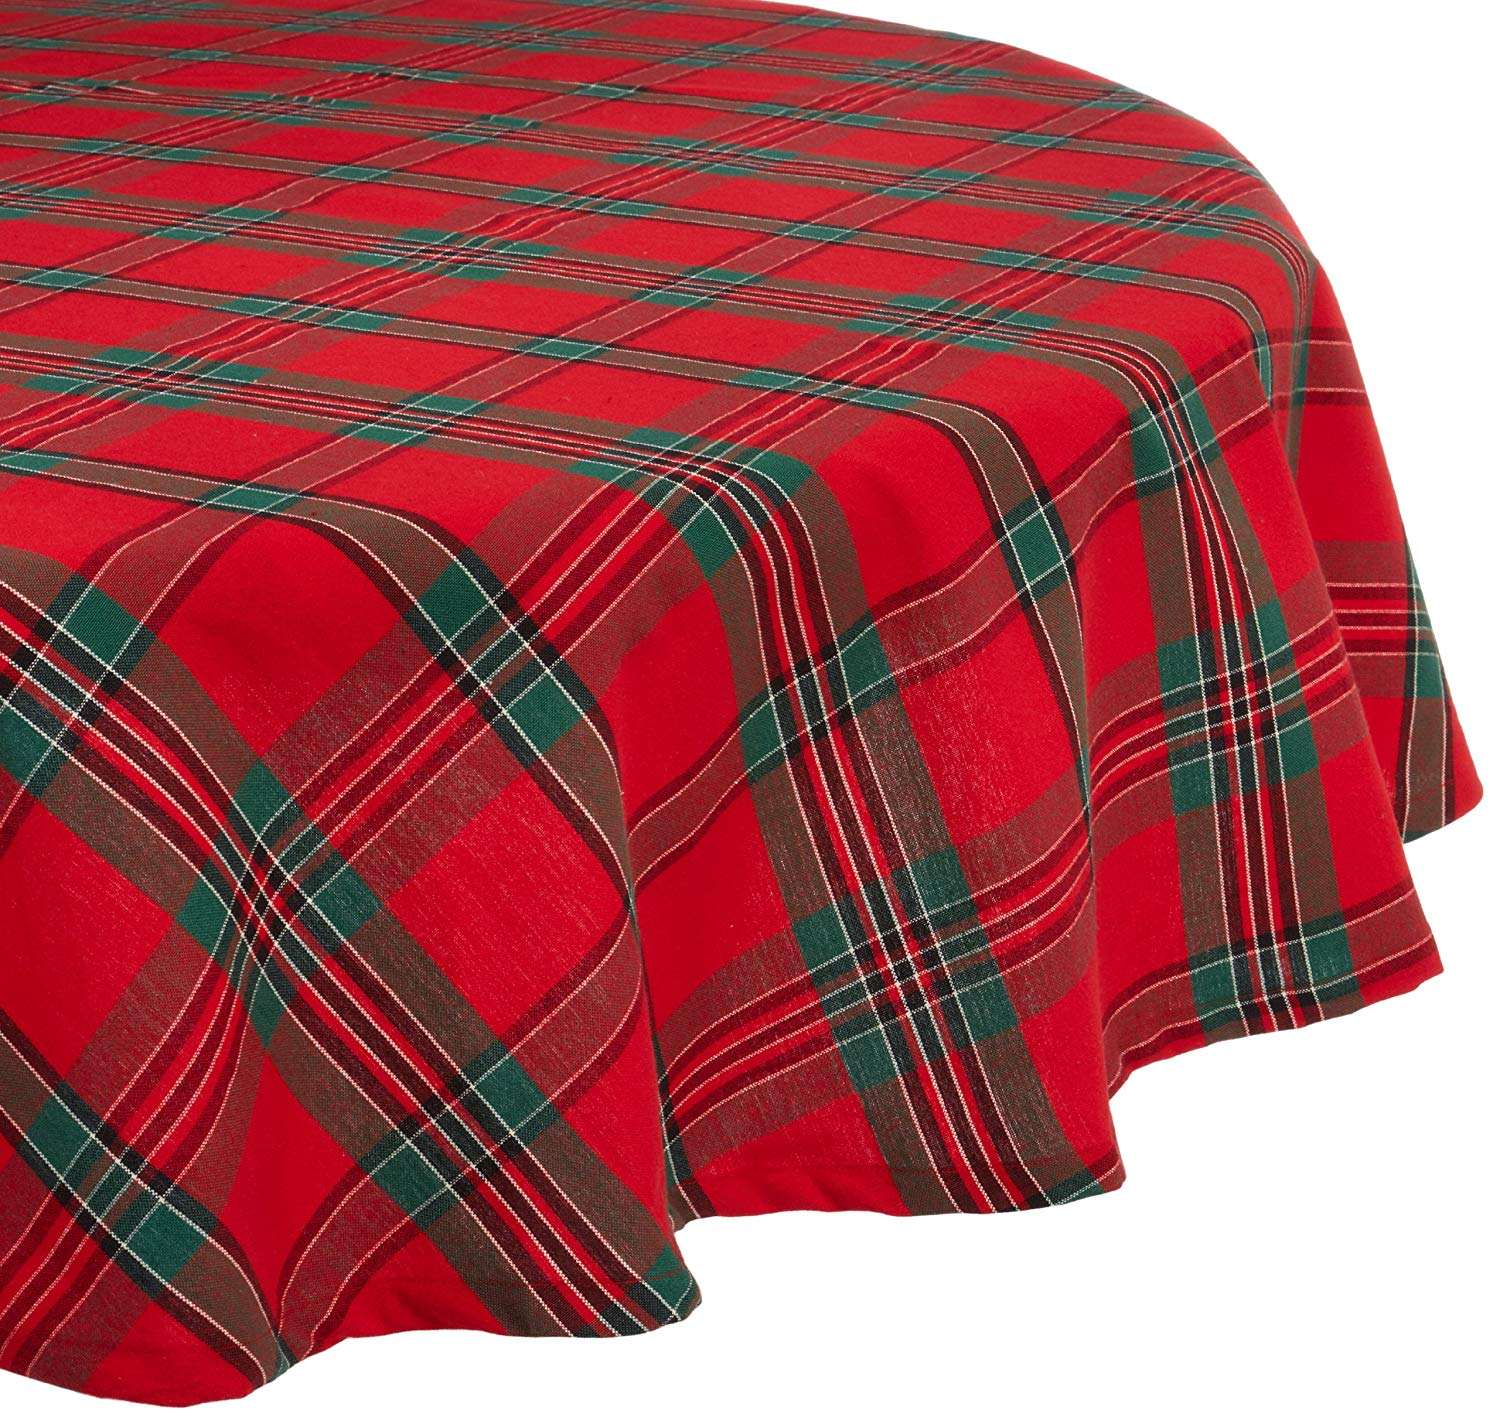 dii holiday plaid round tablecloth cotton with oyl accent hem for family gatherings christmas dinner seats kitchen market patio umbrella runner rugs table white glass lamp shades